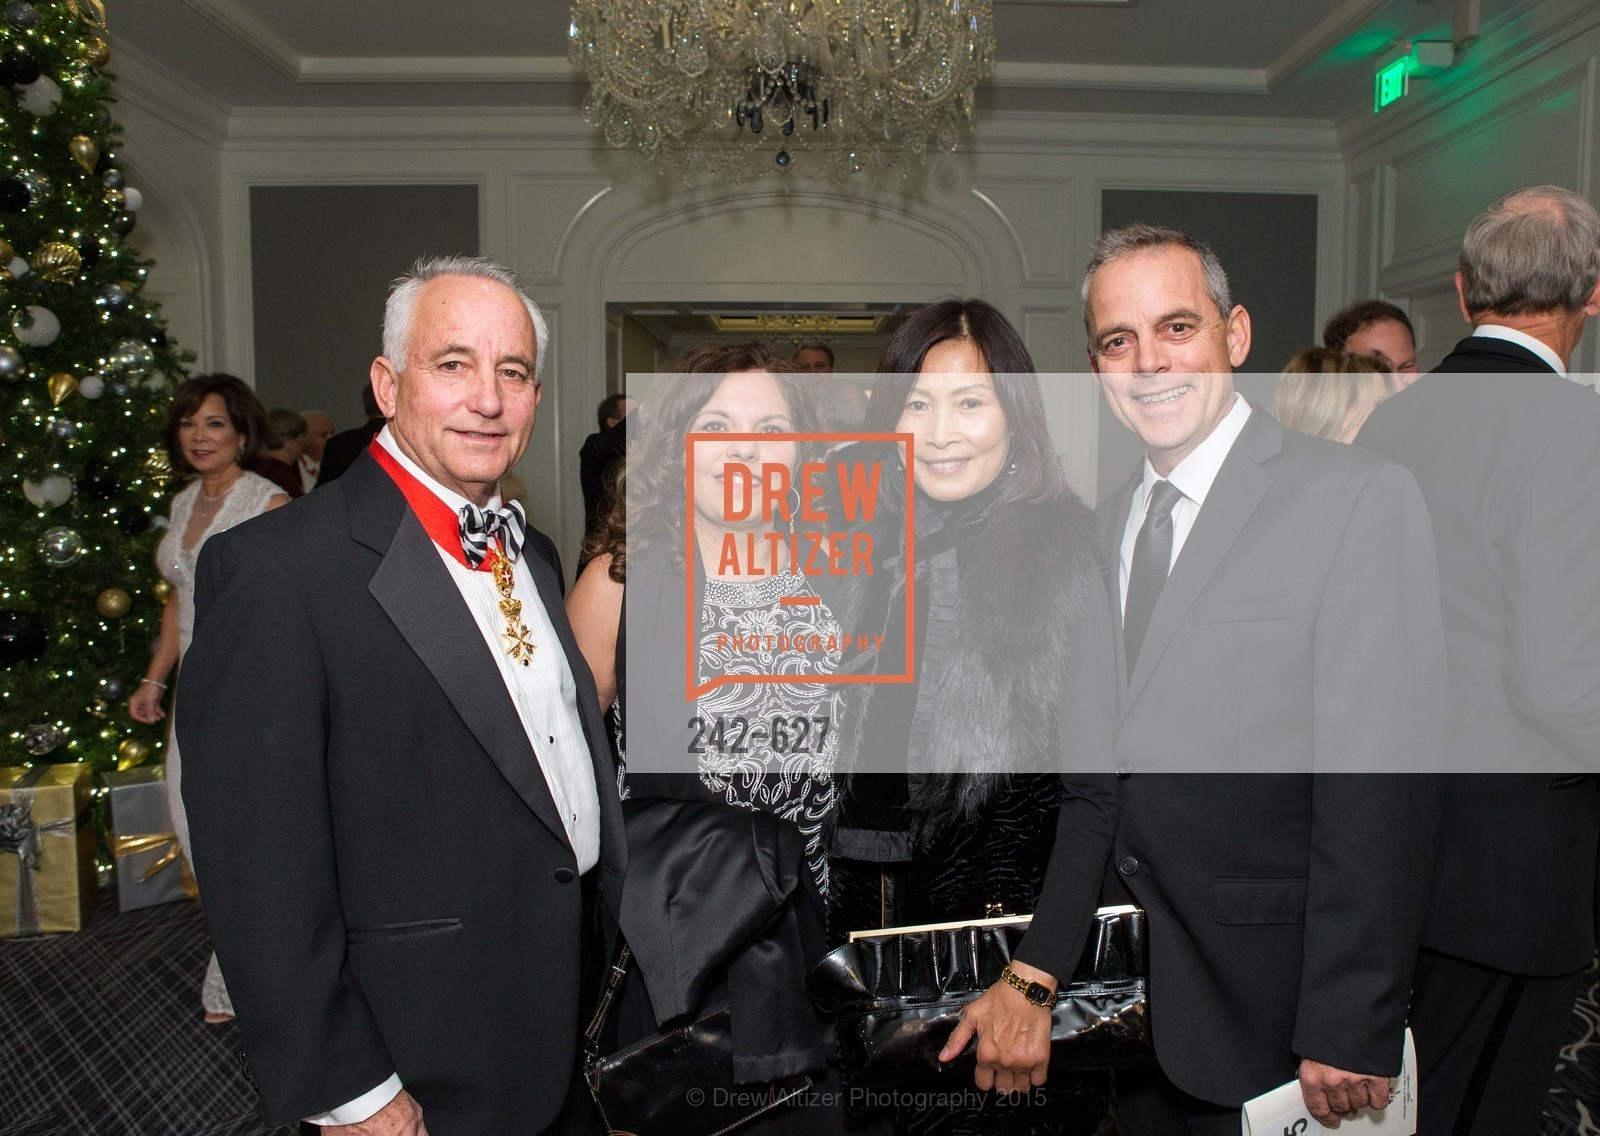 Steve Lopes, Alice Lopes, Xiao Lopes, Jeff Lopes, Sovereign Order Of St John of Jerusalem Knights Hospitaller Gala, Ritz Carlton San Francisco, December 5th, 2015,Drew Altizer, Drew Altizer Photography, full-service agency, private events, San Francisco photographer, photographer california